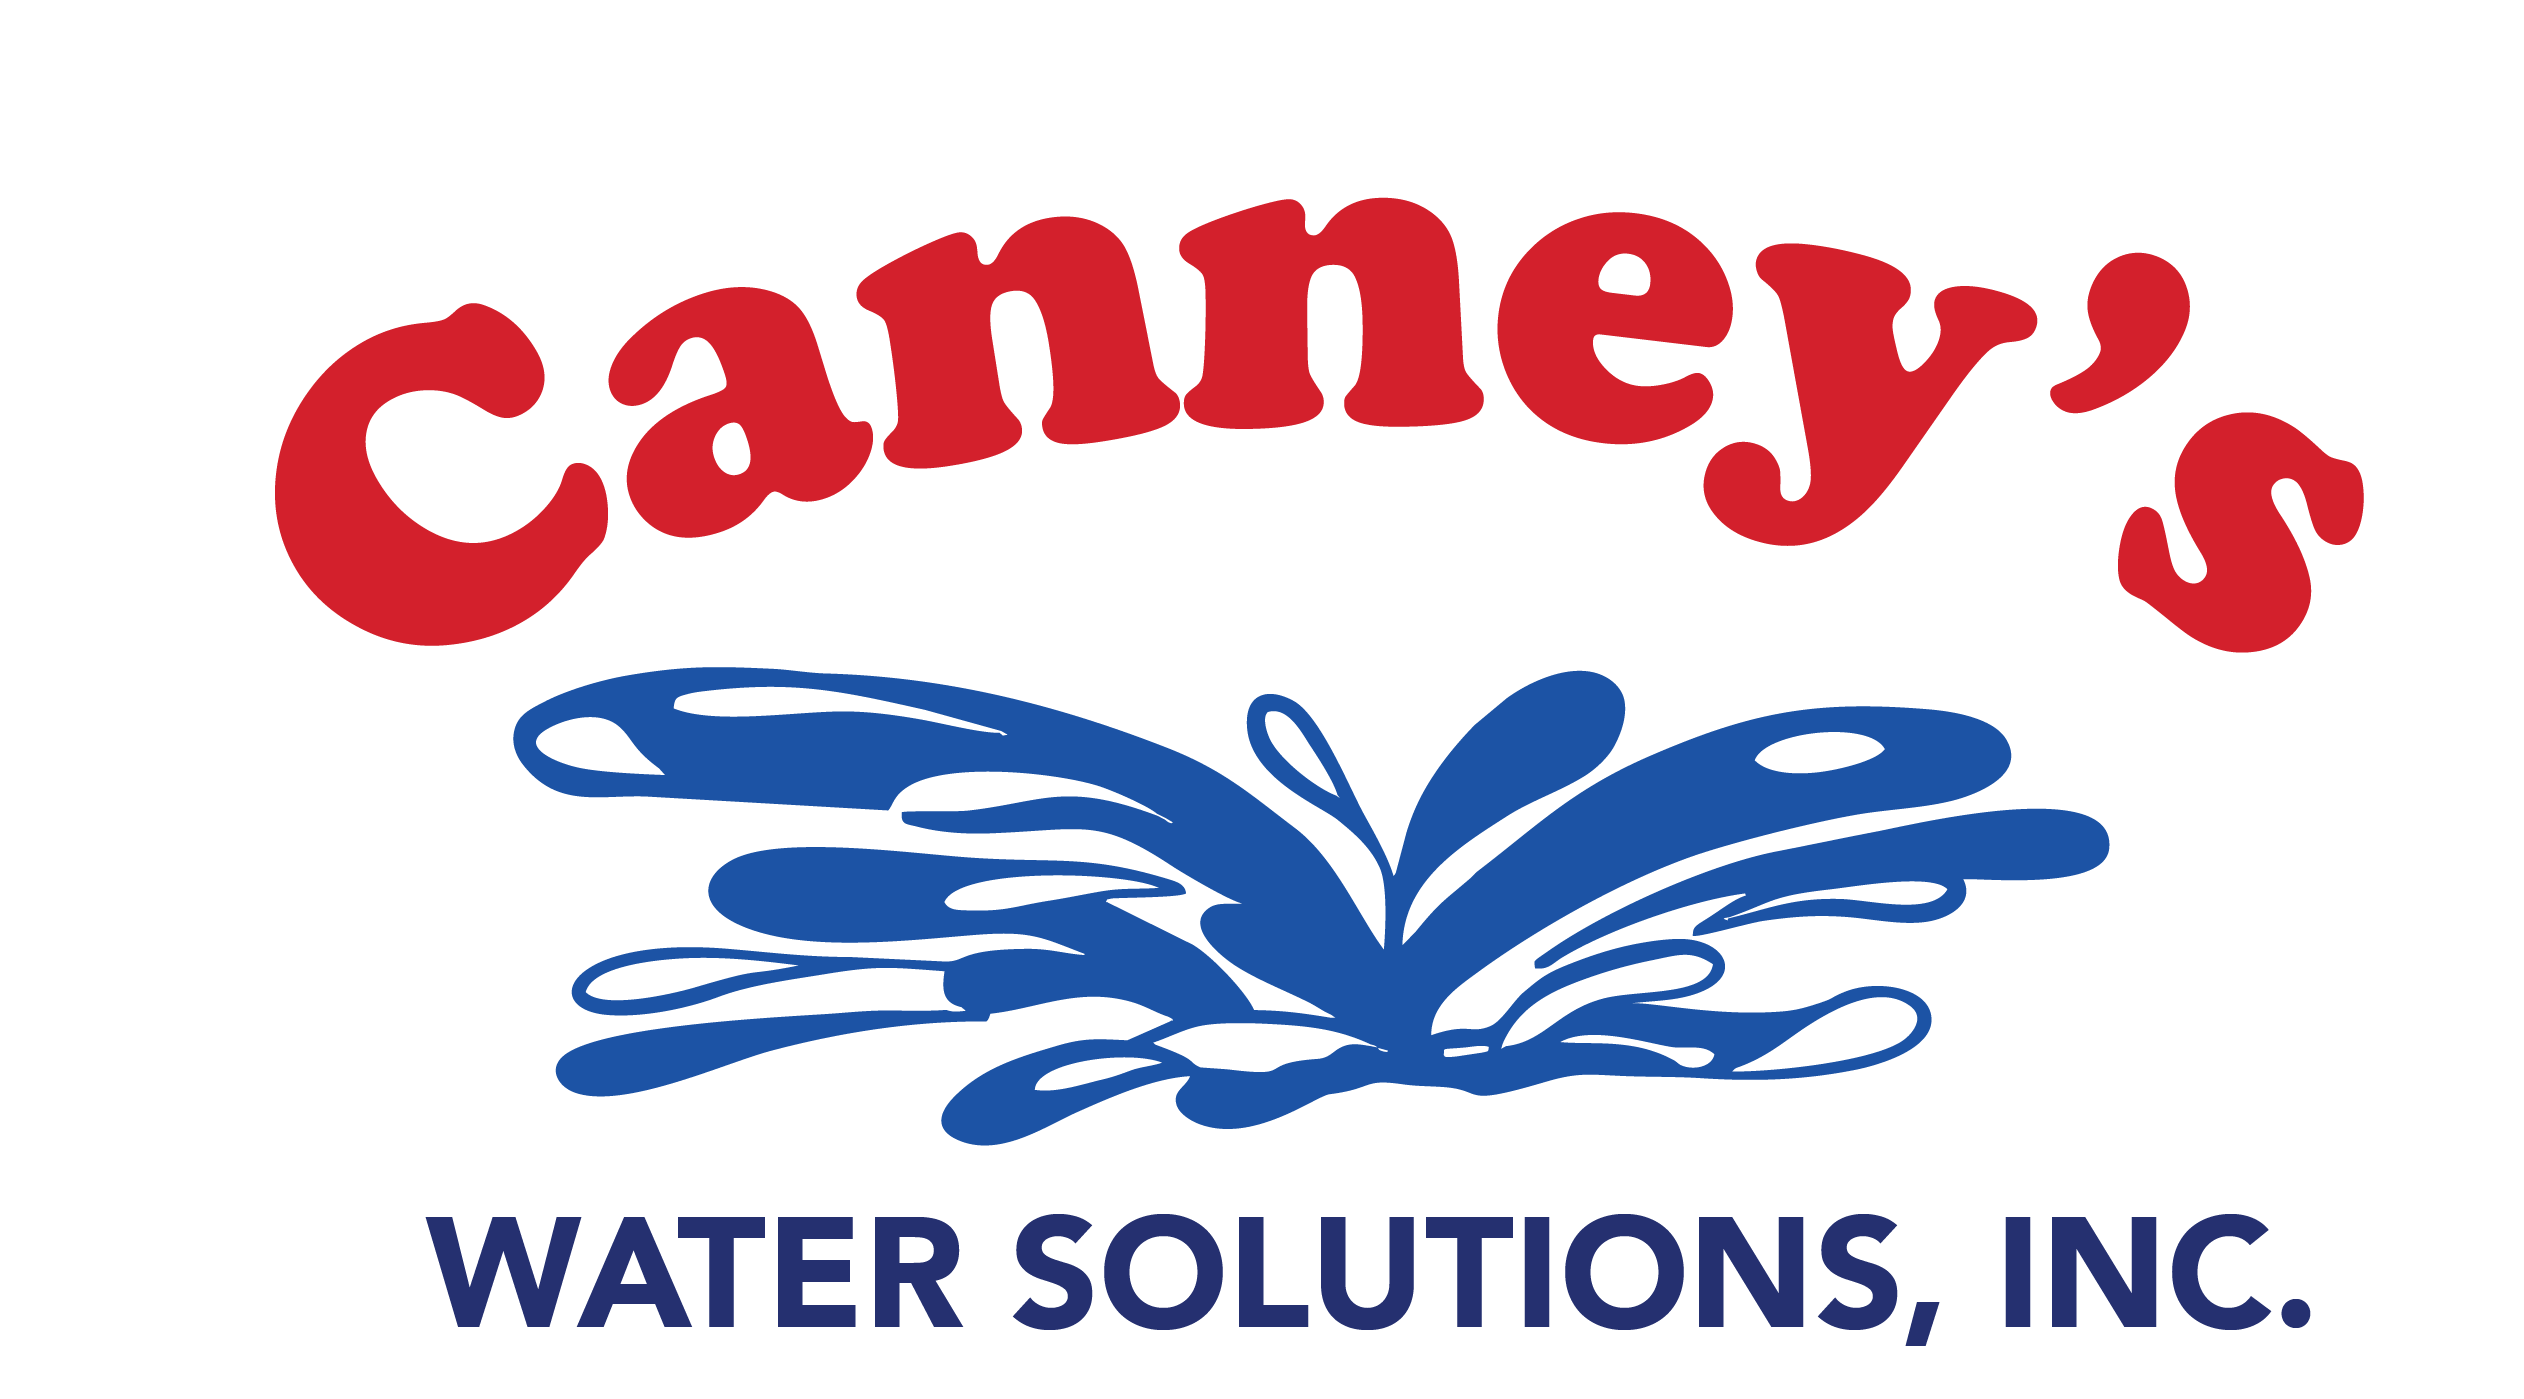 Canney's Water Solutions